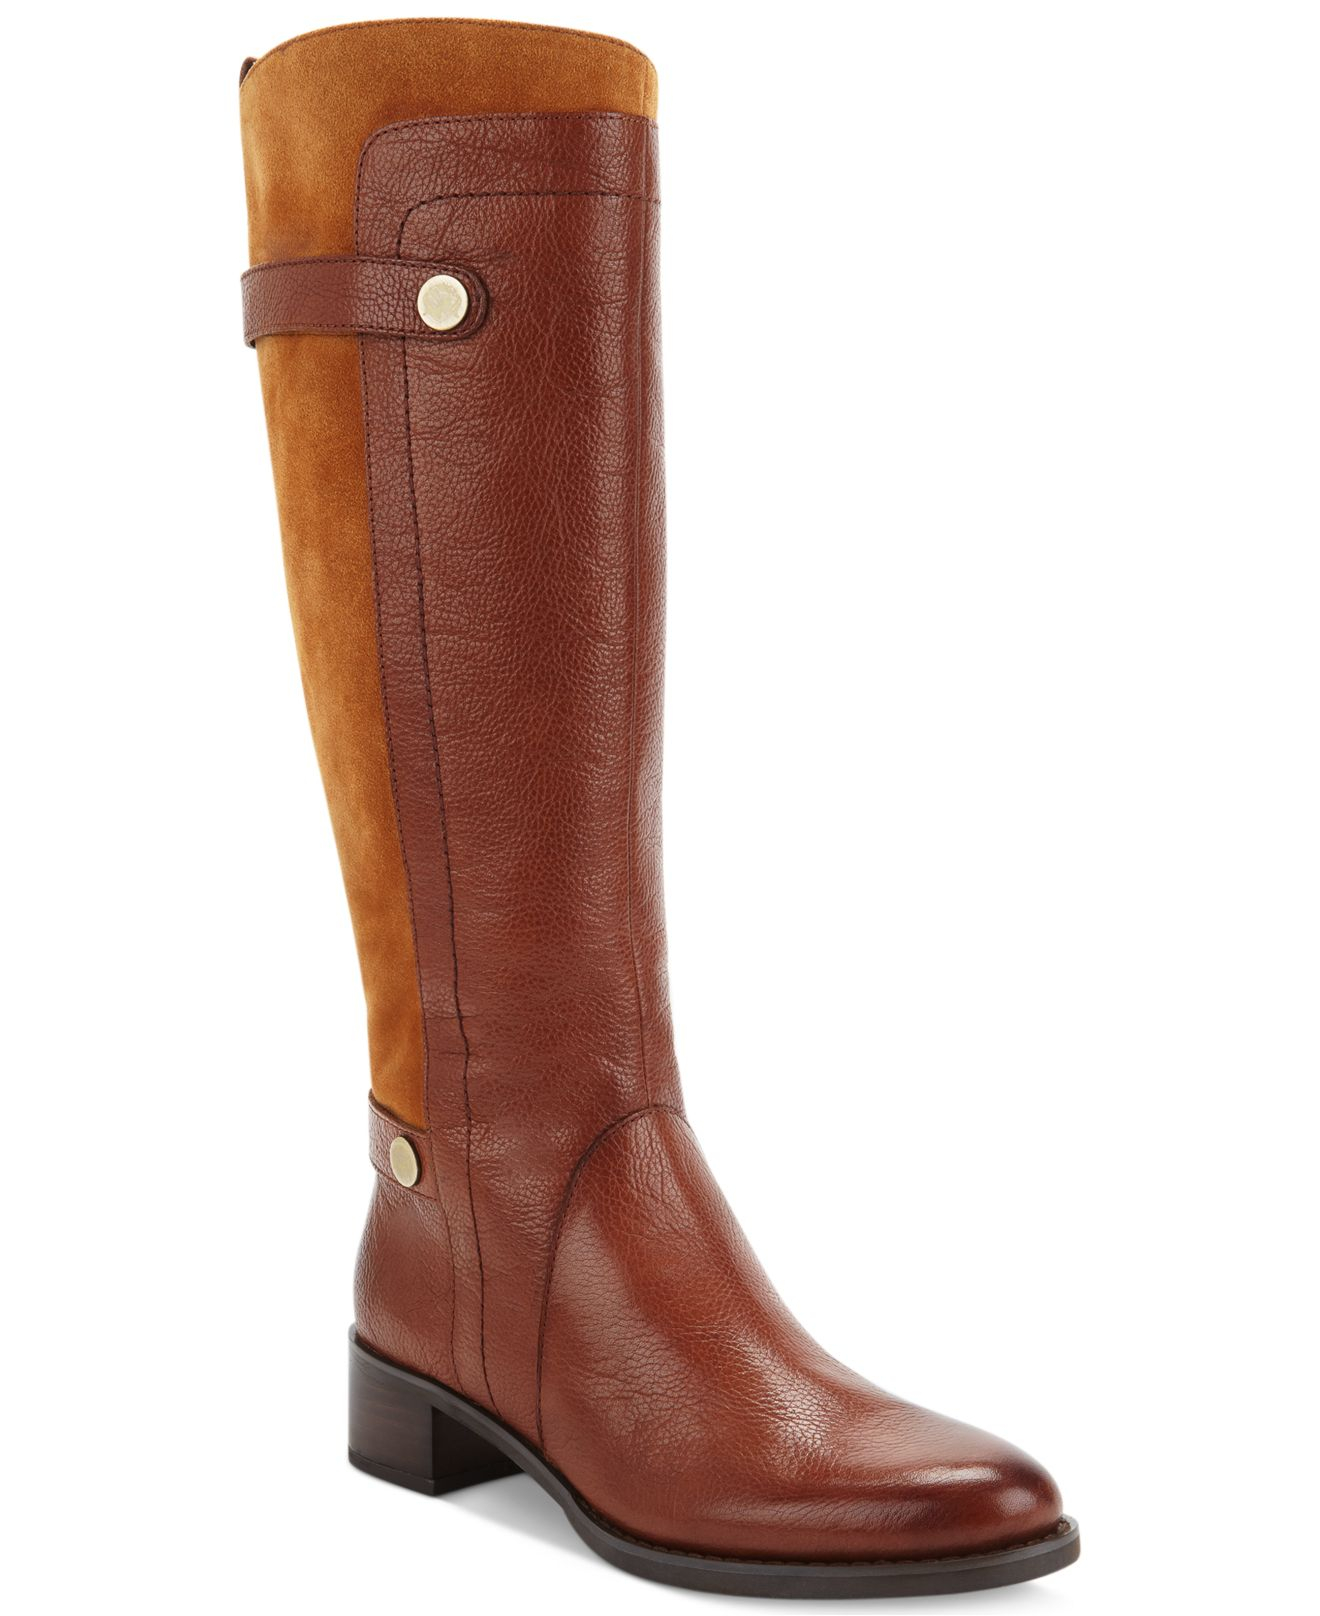 Franco sarto Cymbols Tall Boots in Brown